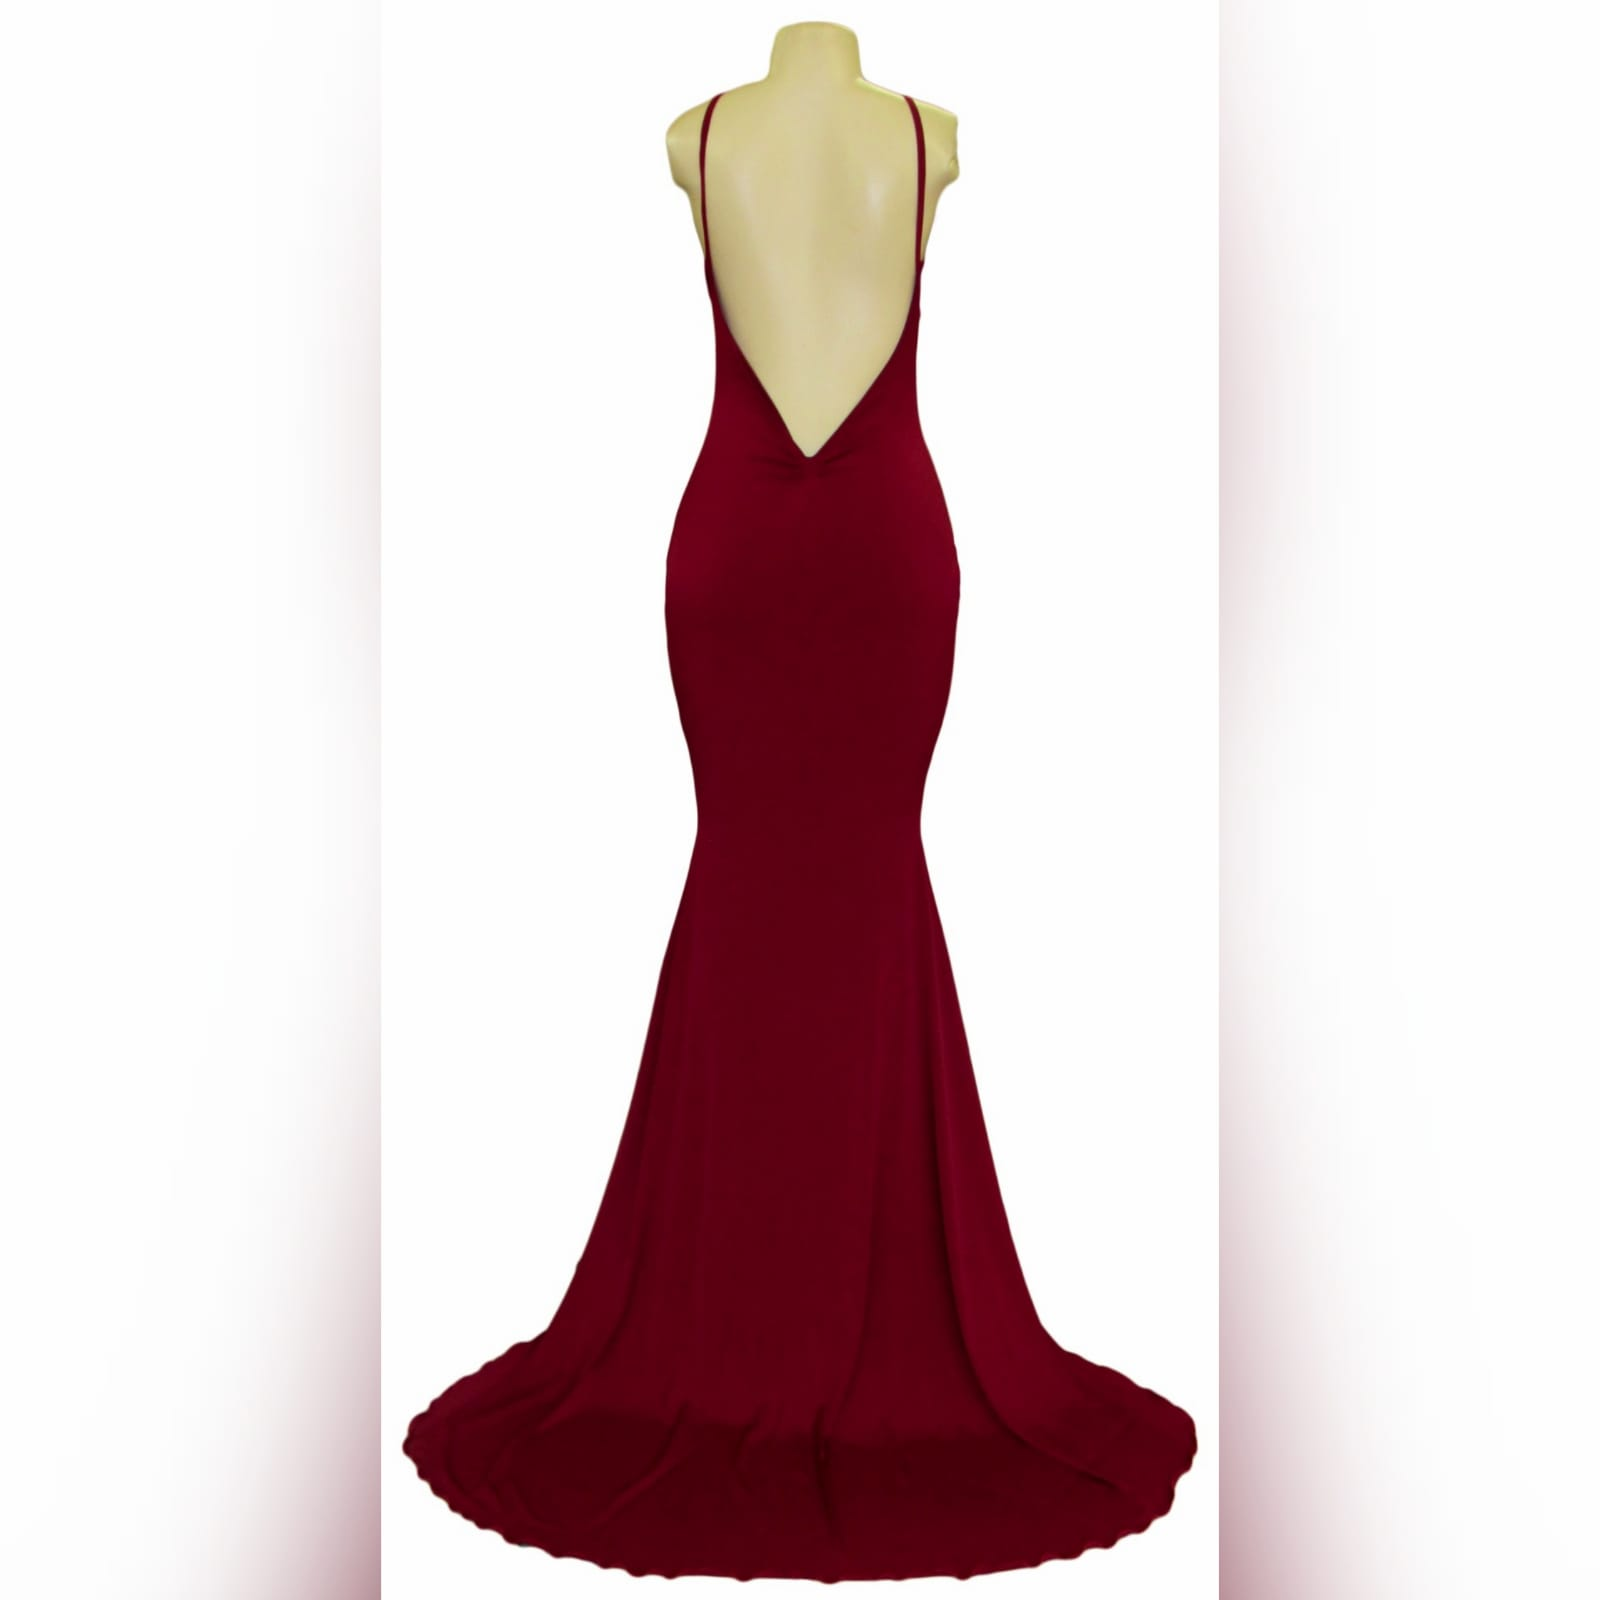 Deep red plunging neckline prom dress 11 deep red plunging neckline prom dress, low open back with thin should straps and a long train.